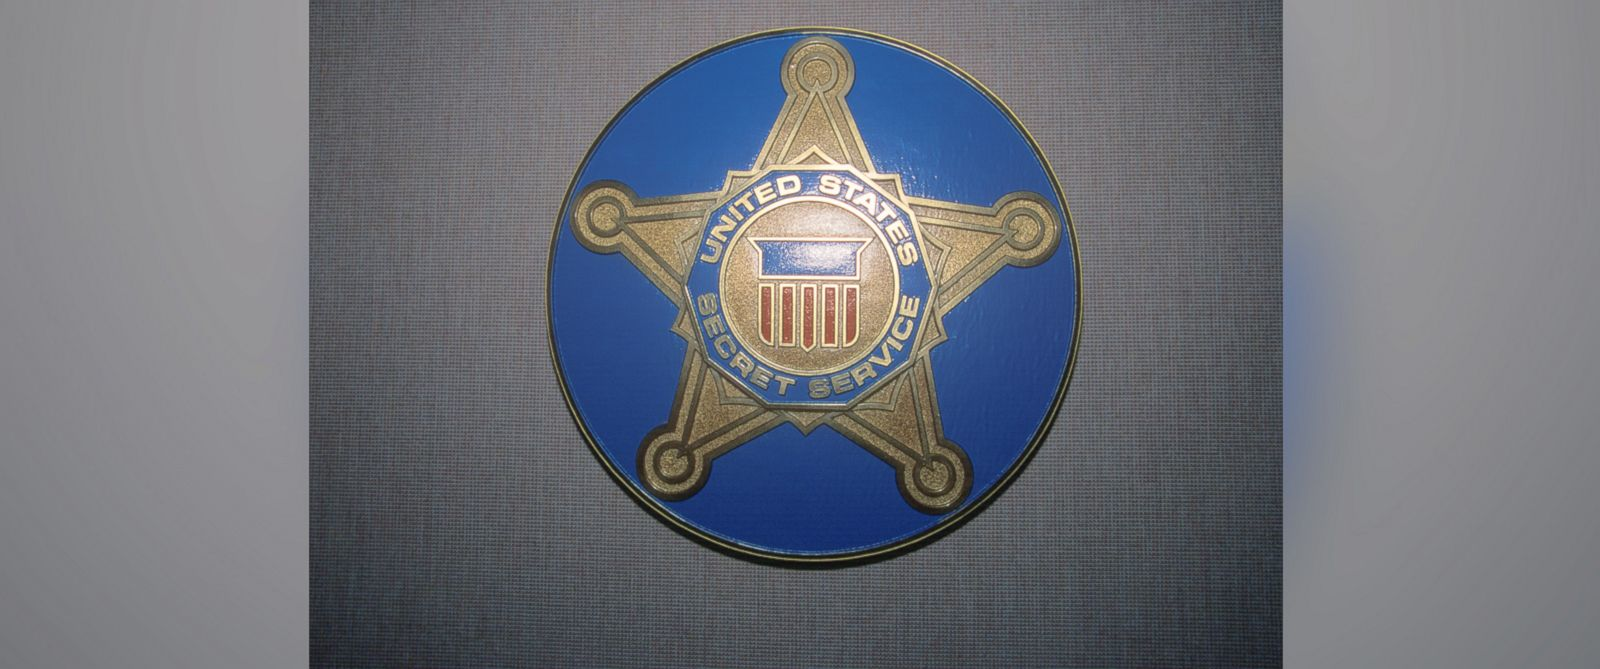 PHOTO: U.S. Secret Service shield is shown in this undated photo.